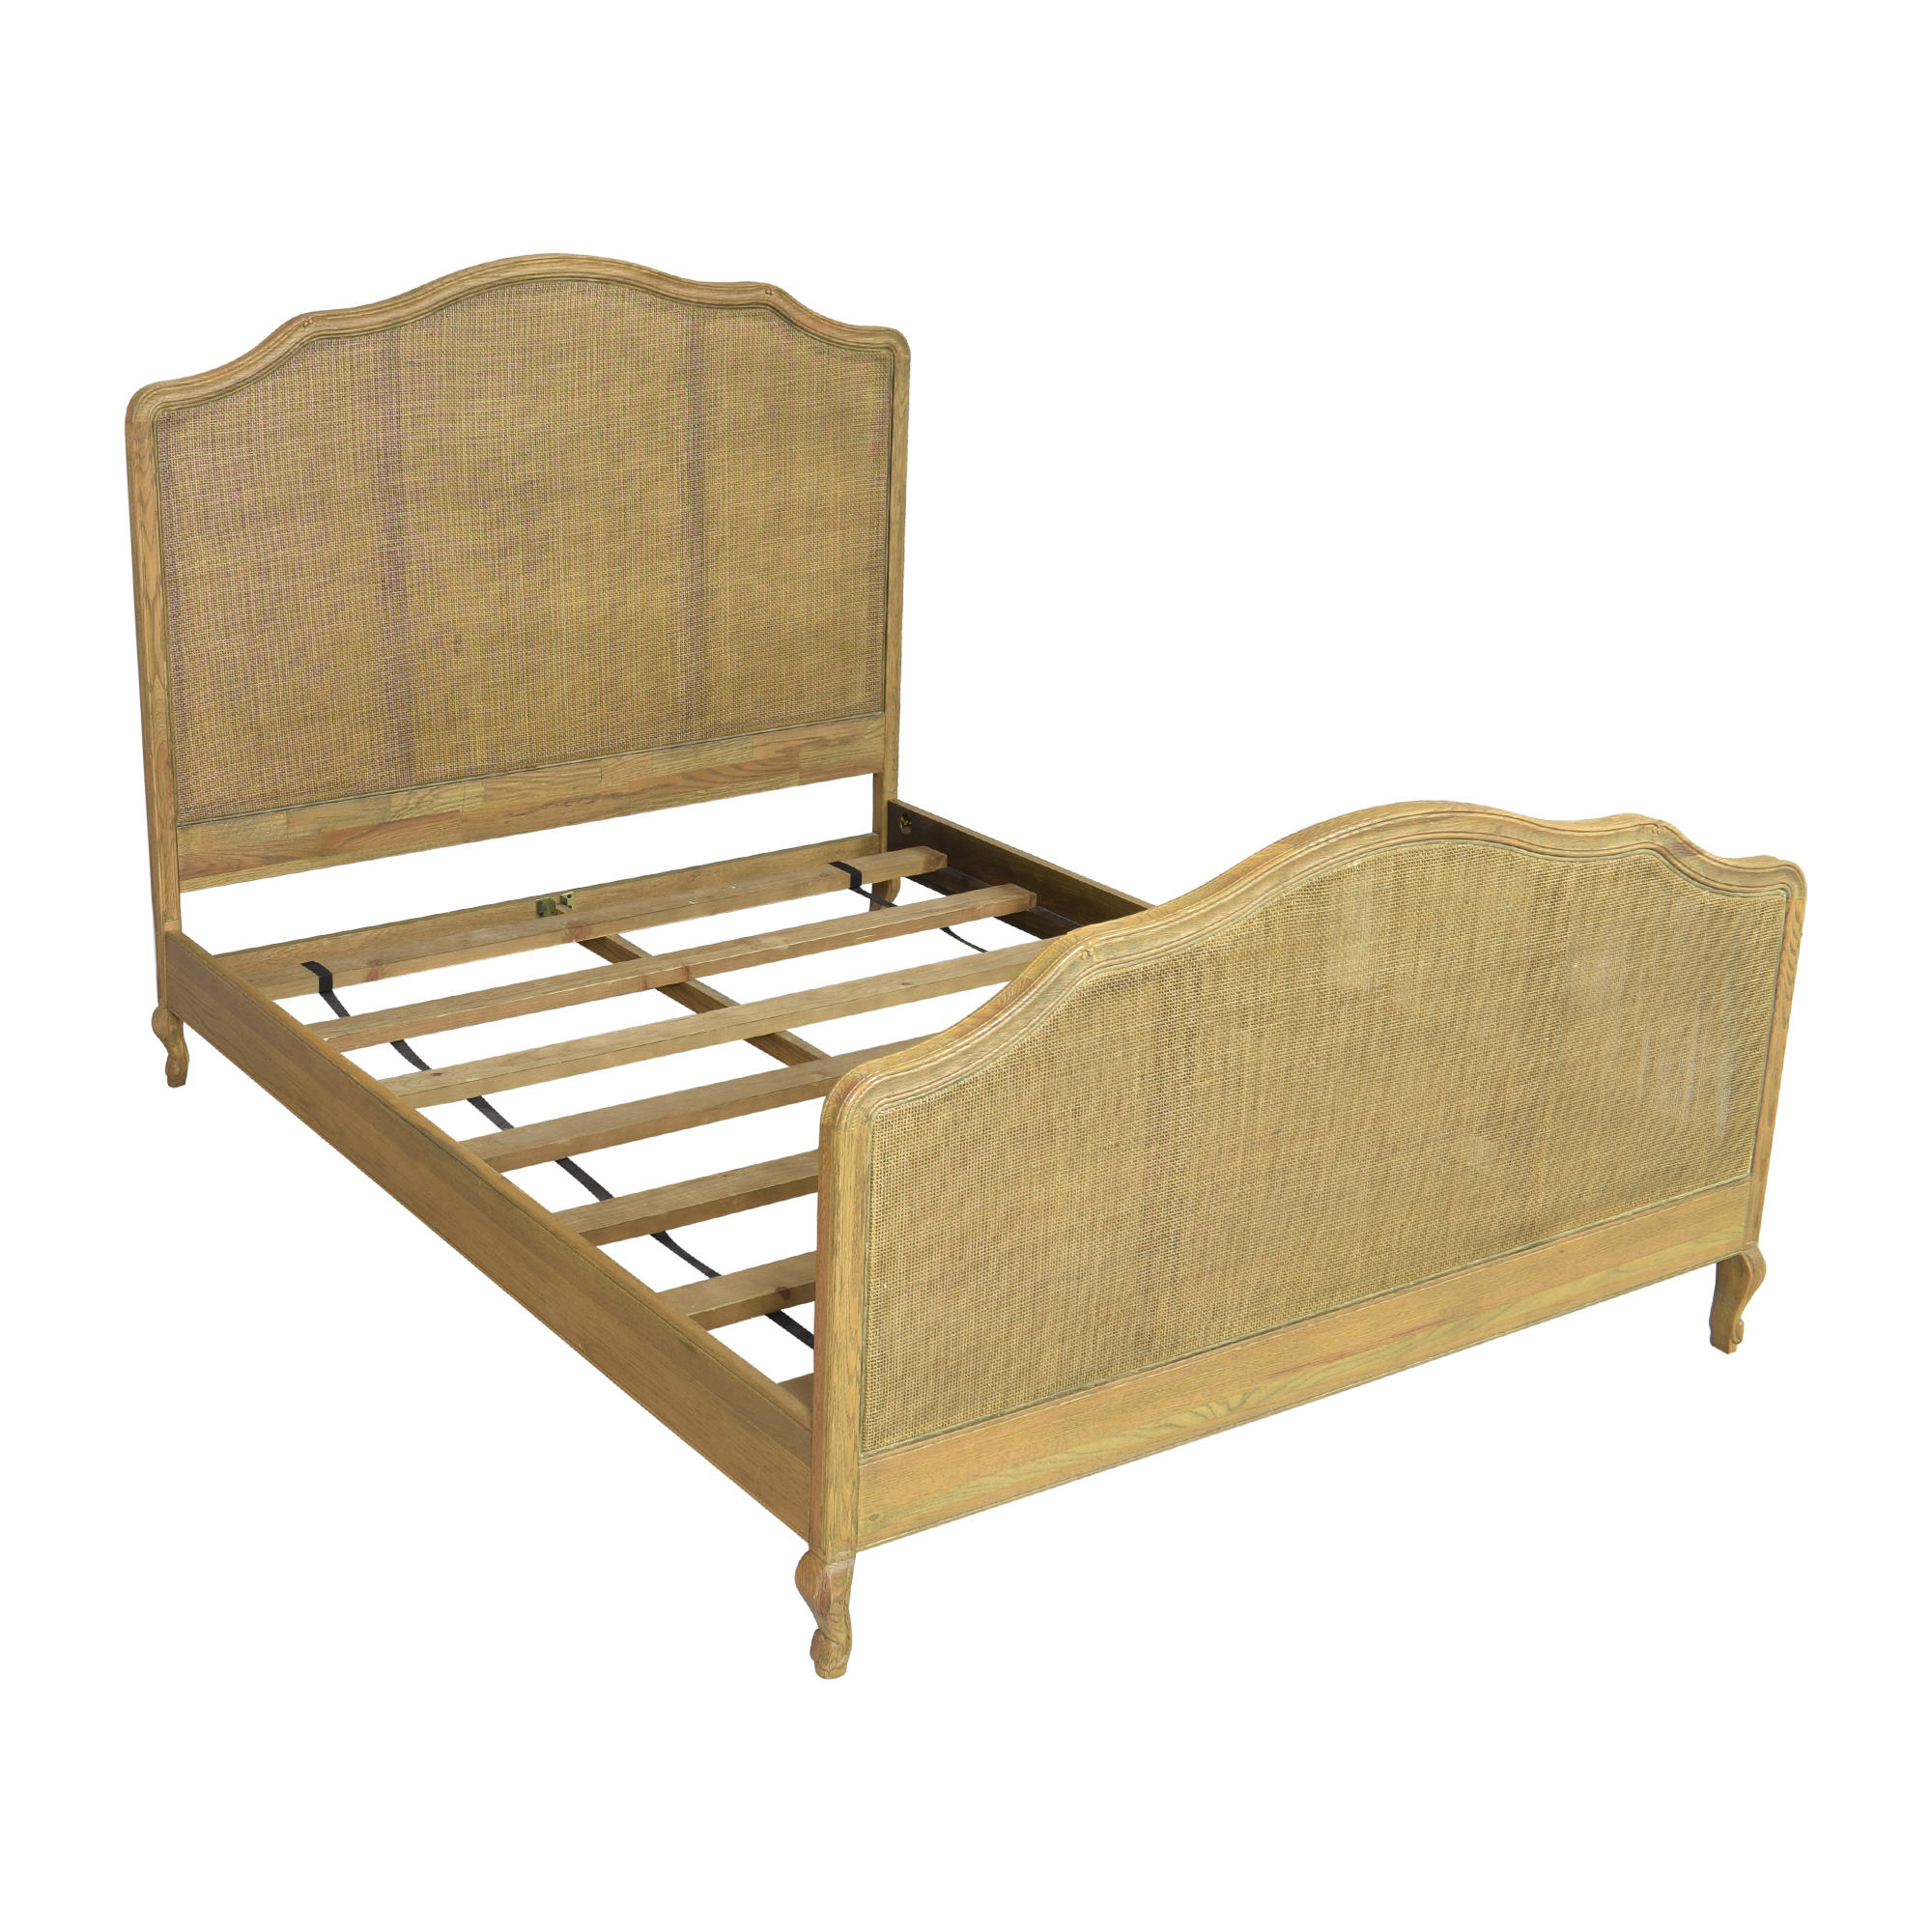 Restoration Hardware Restoration Hardware Lorraine Caned Queen Bed brown